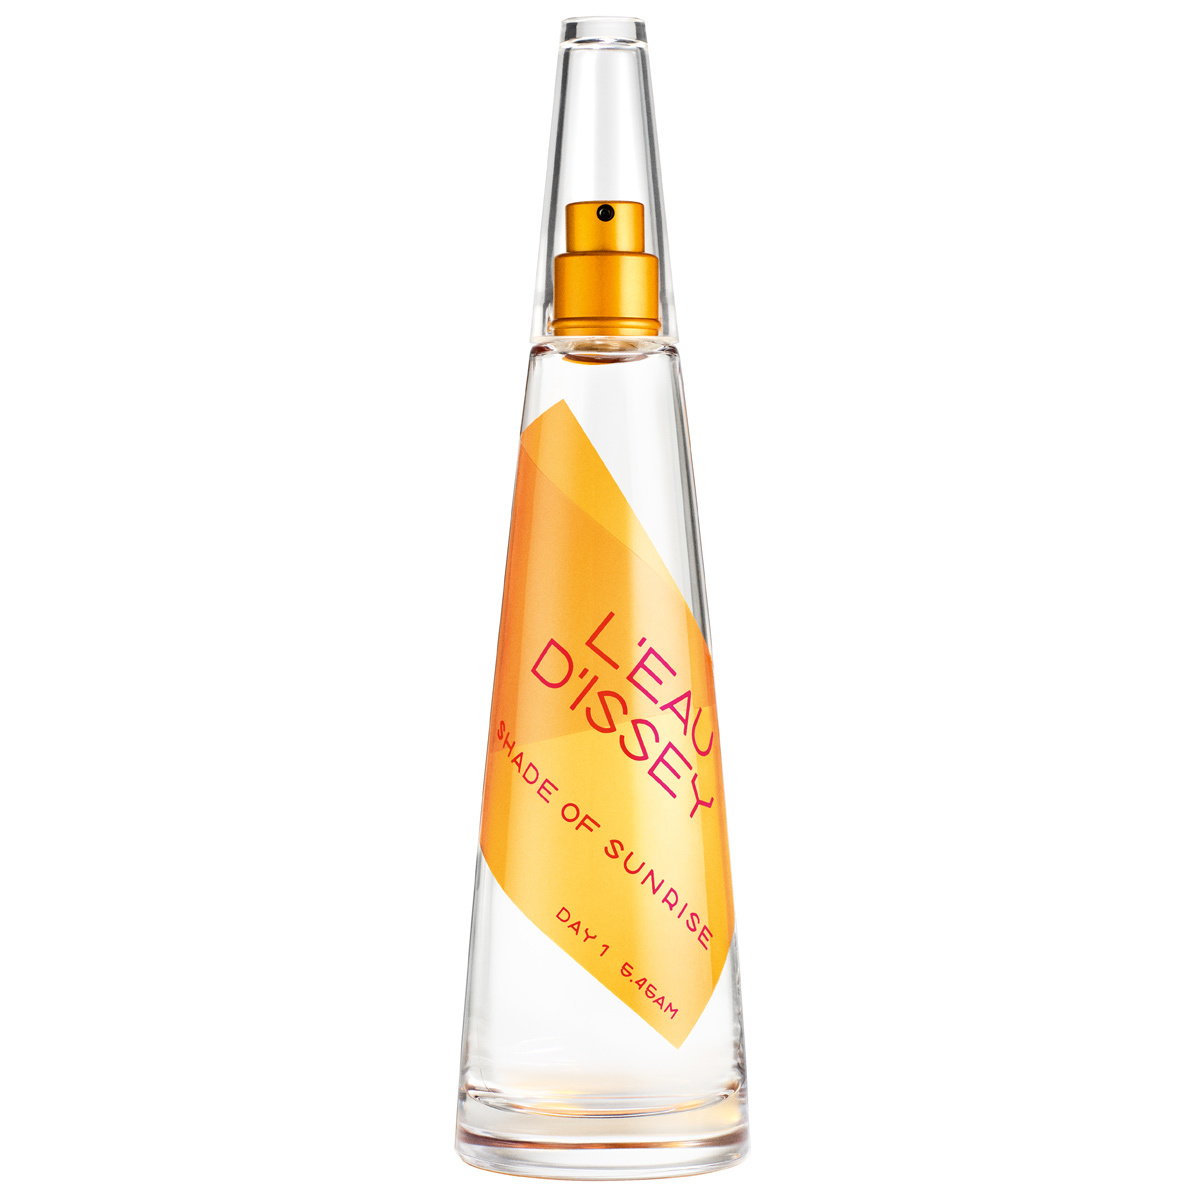 L'Eau d'Issey Shade of Sunrise de Issey Miyake